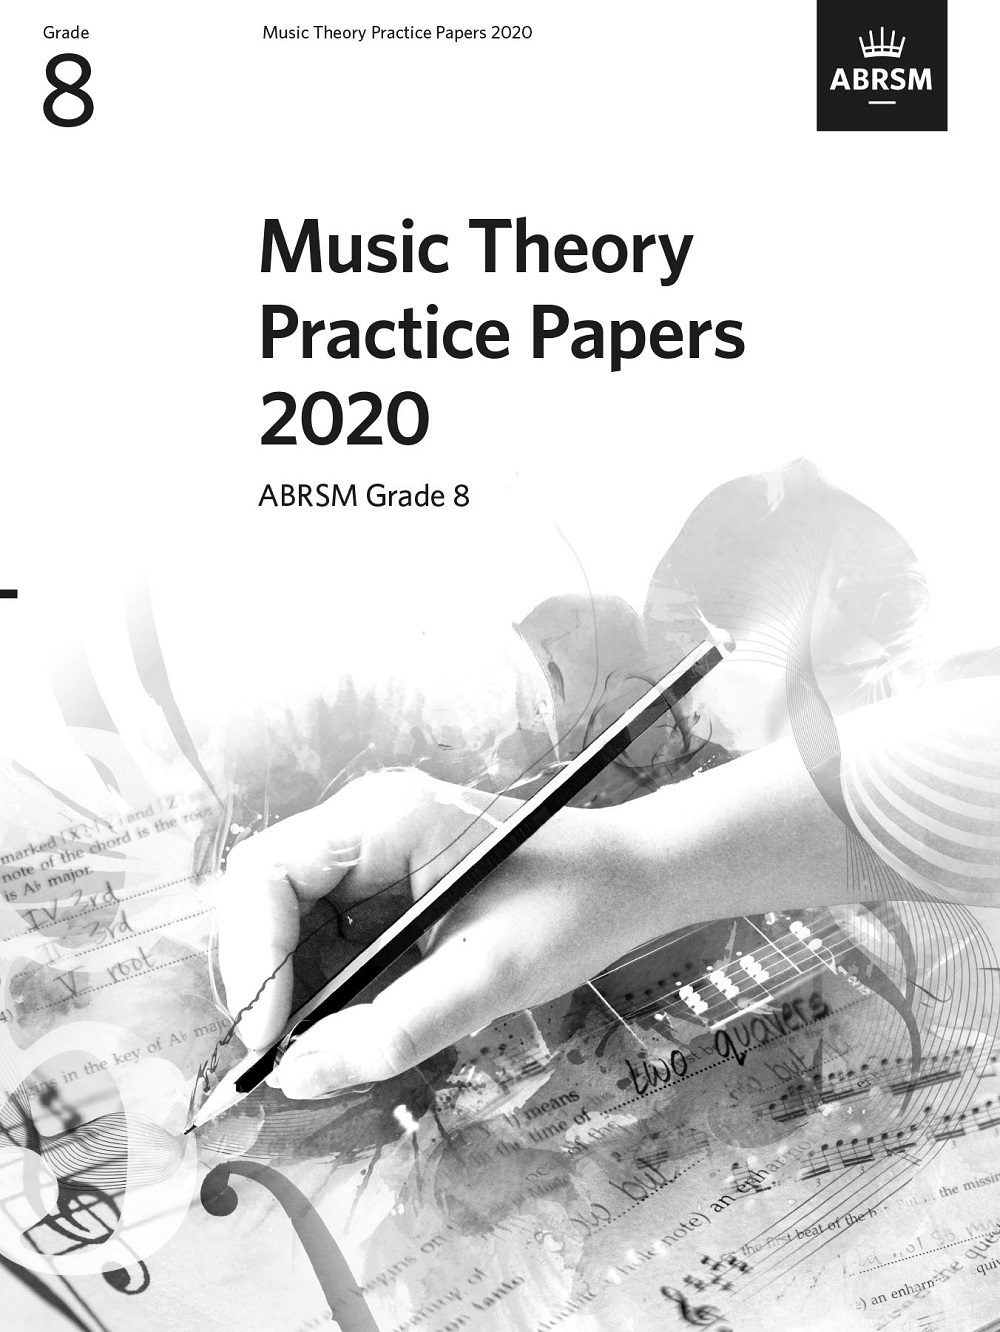 Music Theory Practice Papers 2020 Grade 8: Theory